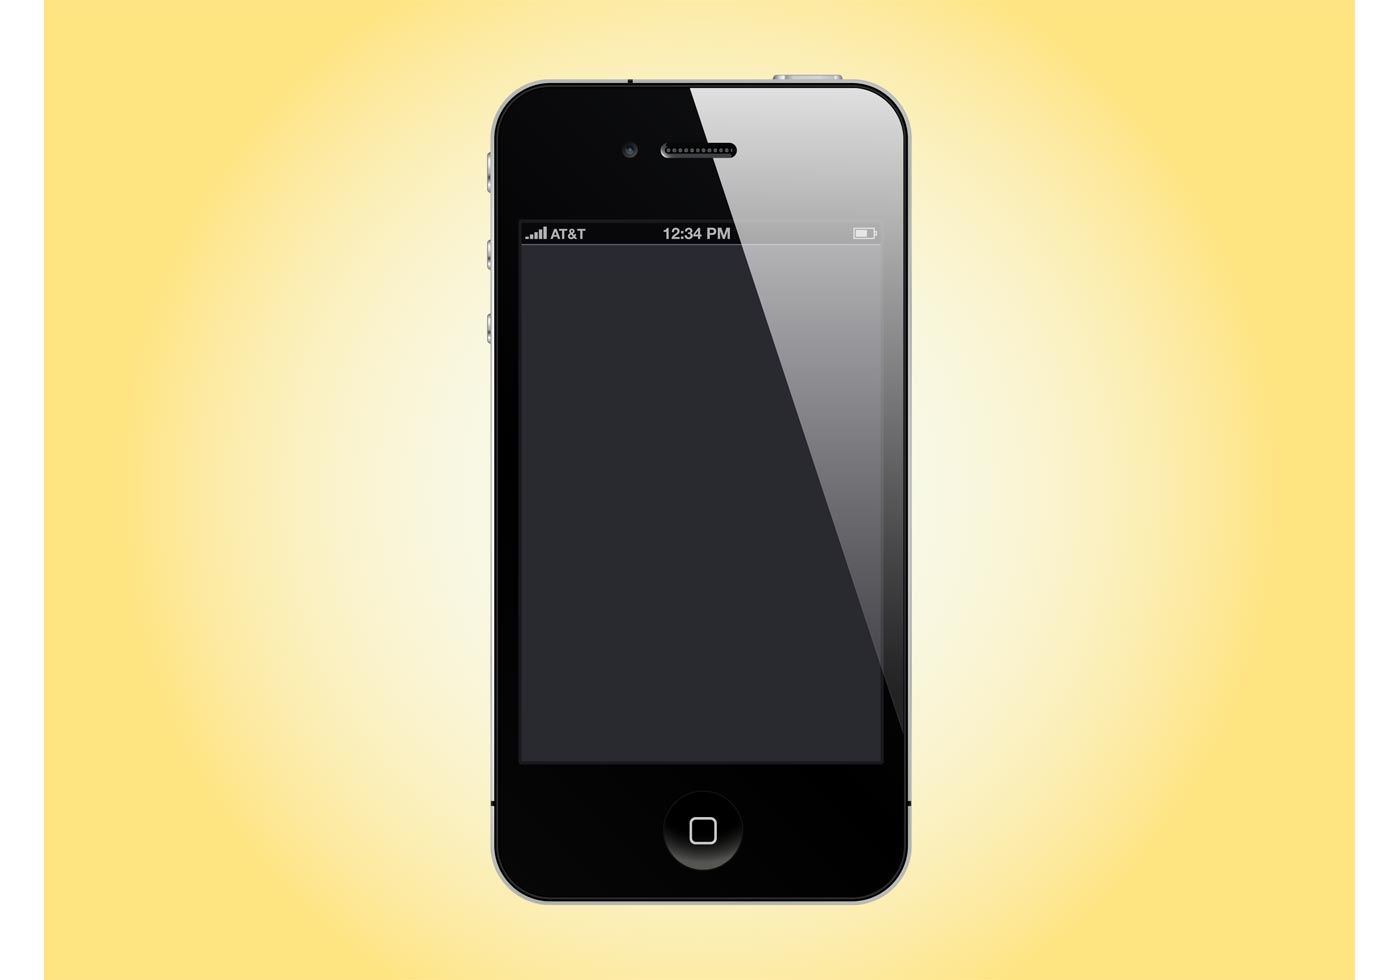 Free keylogger software for iphone